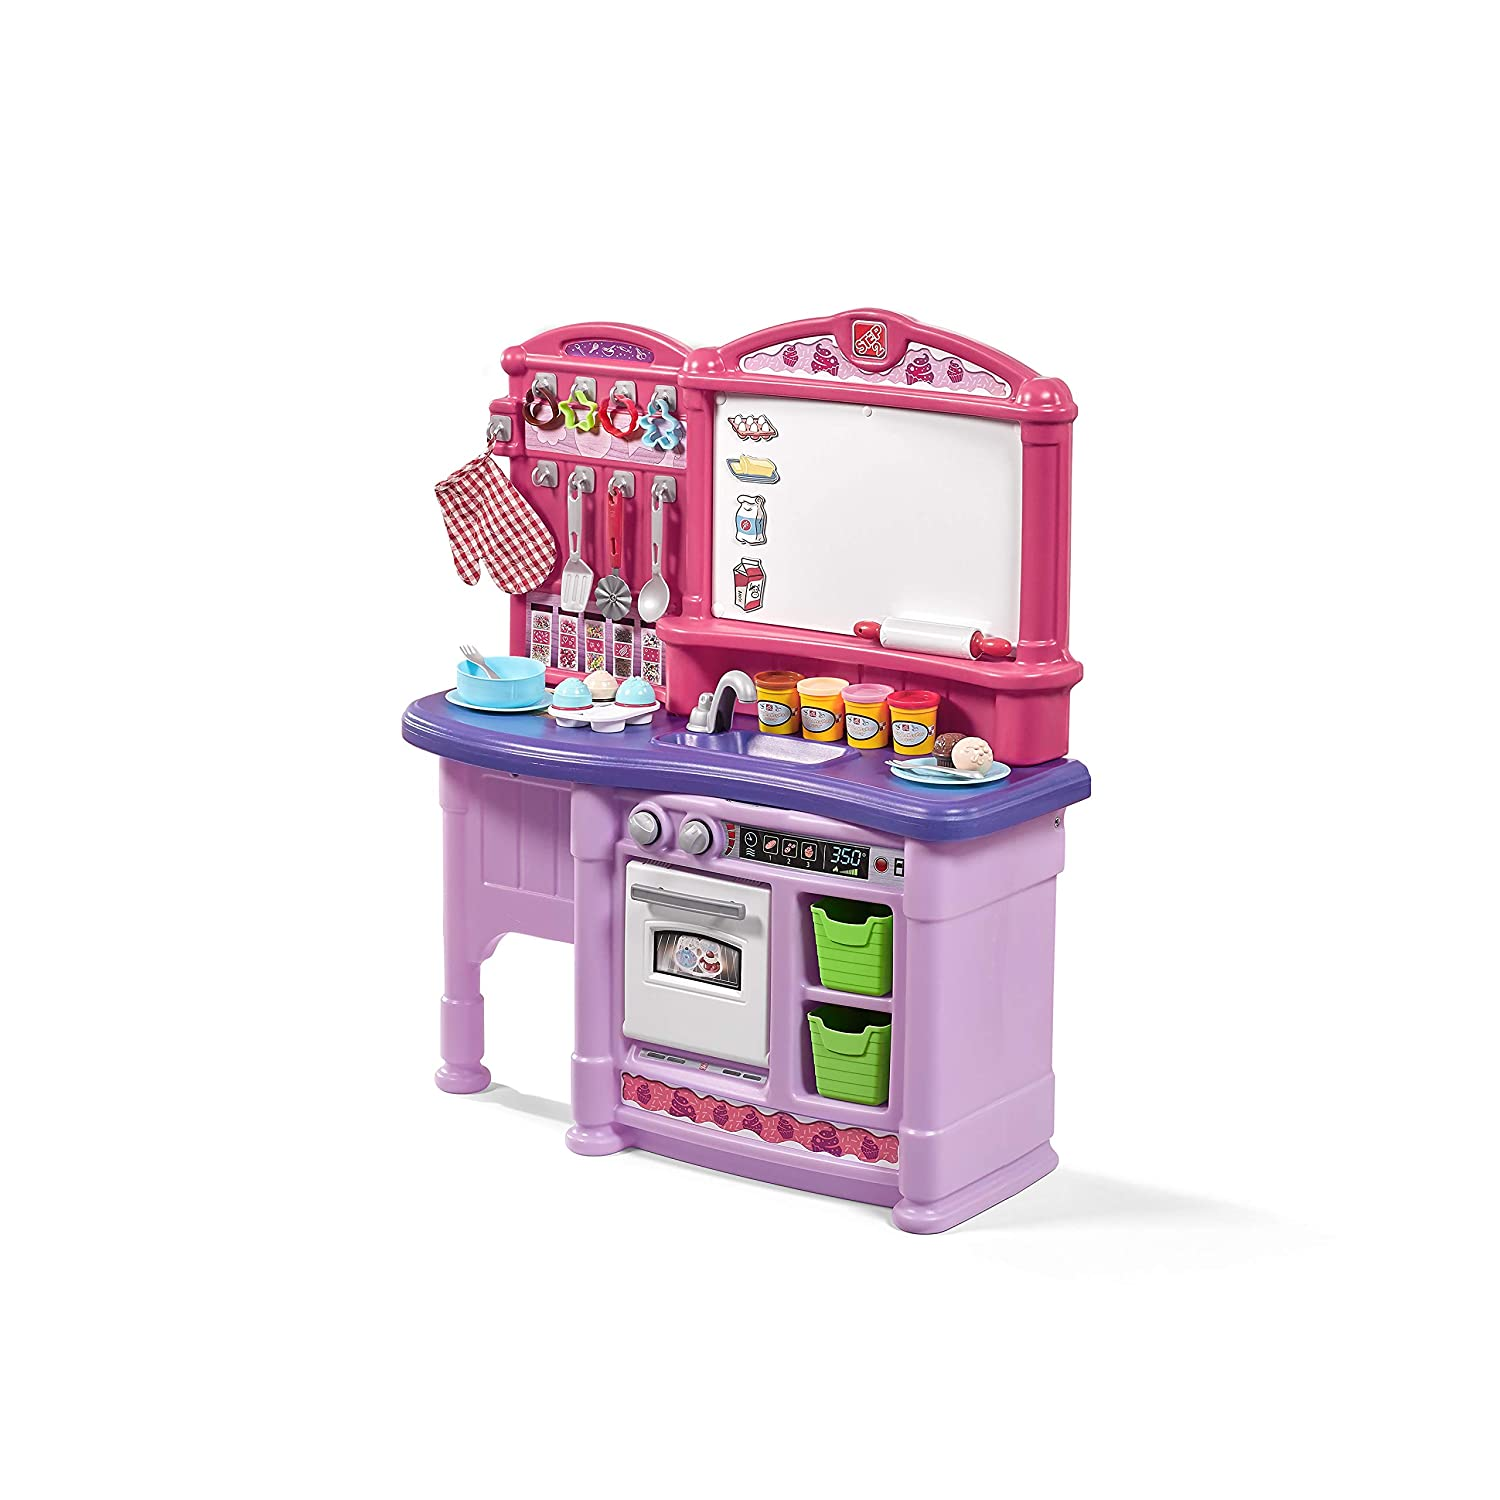 Step2 Create & Bake Play Kitchen | Girls Pink Kids Kitchen Playset with  Play Food | Toy Baking Set & Accessories Included